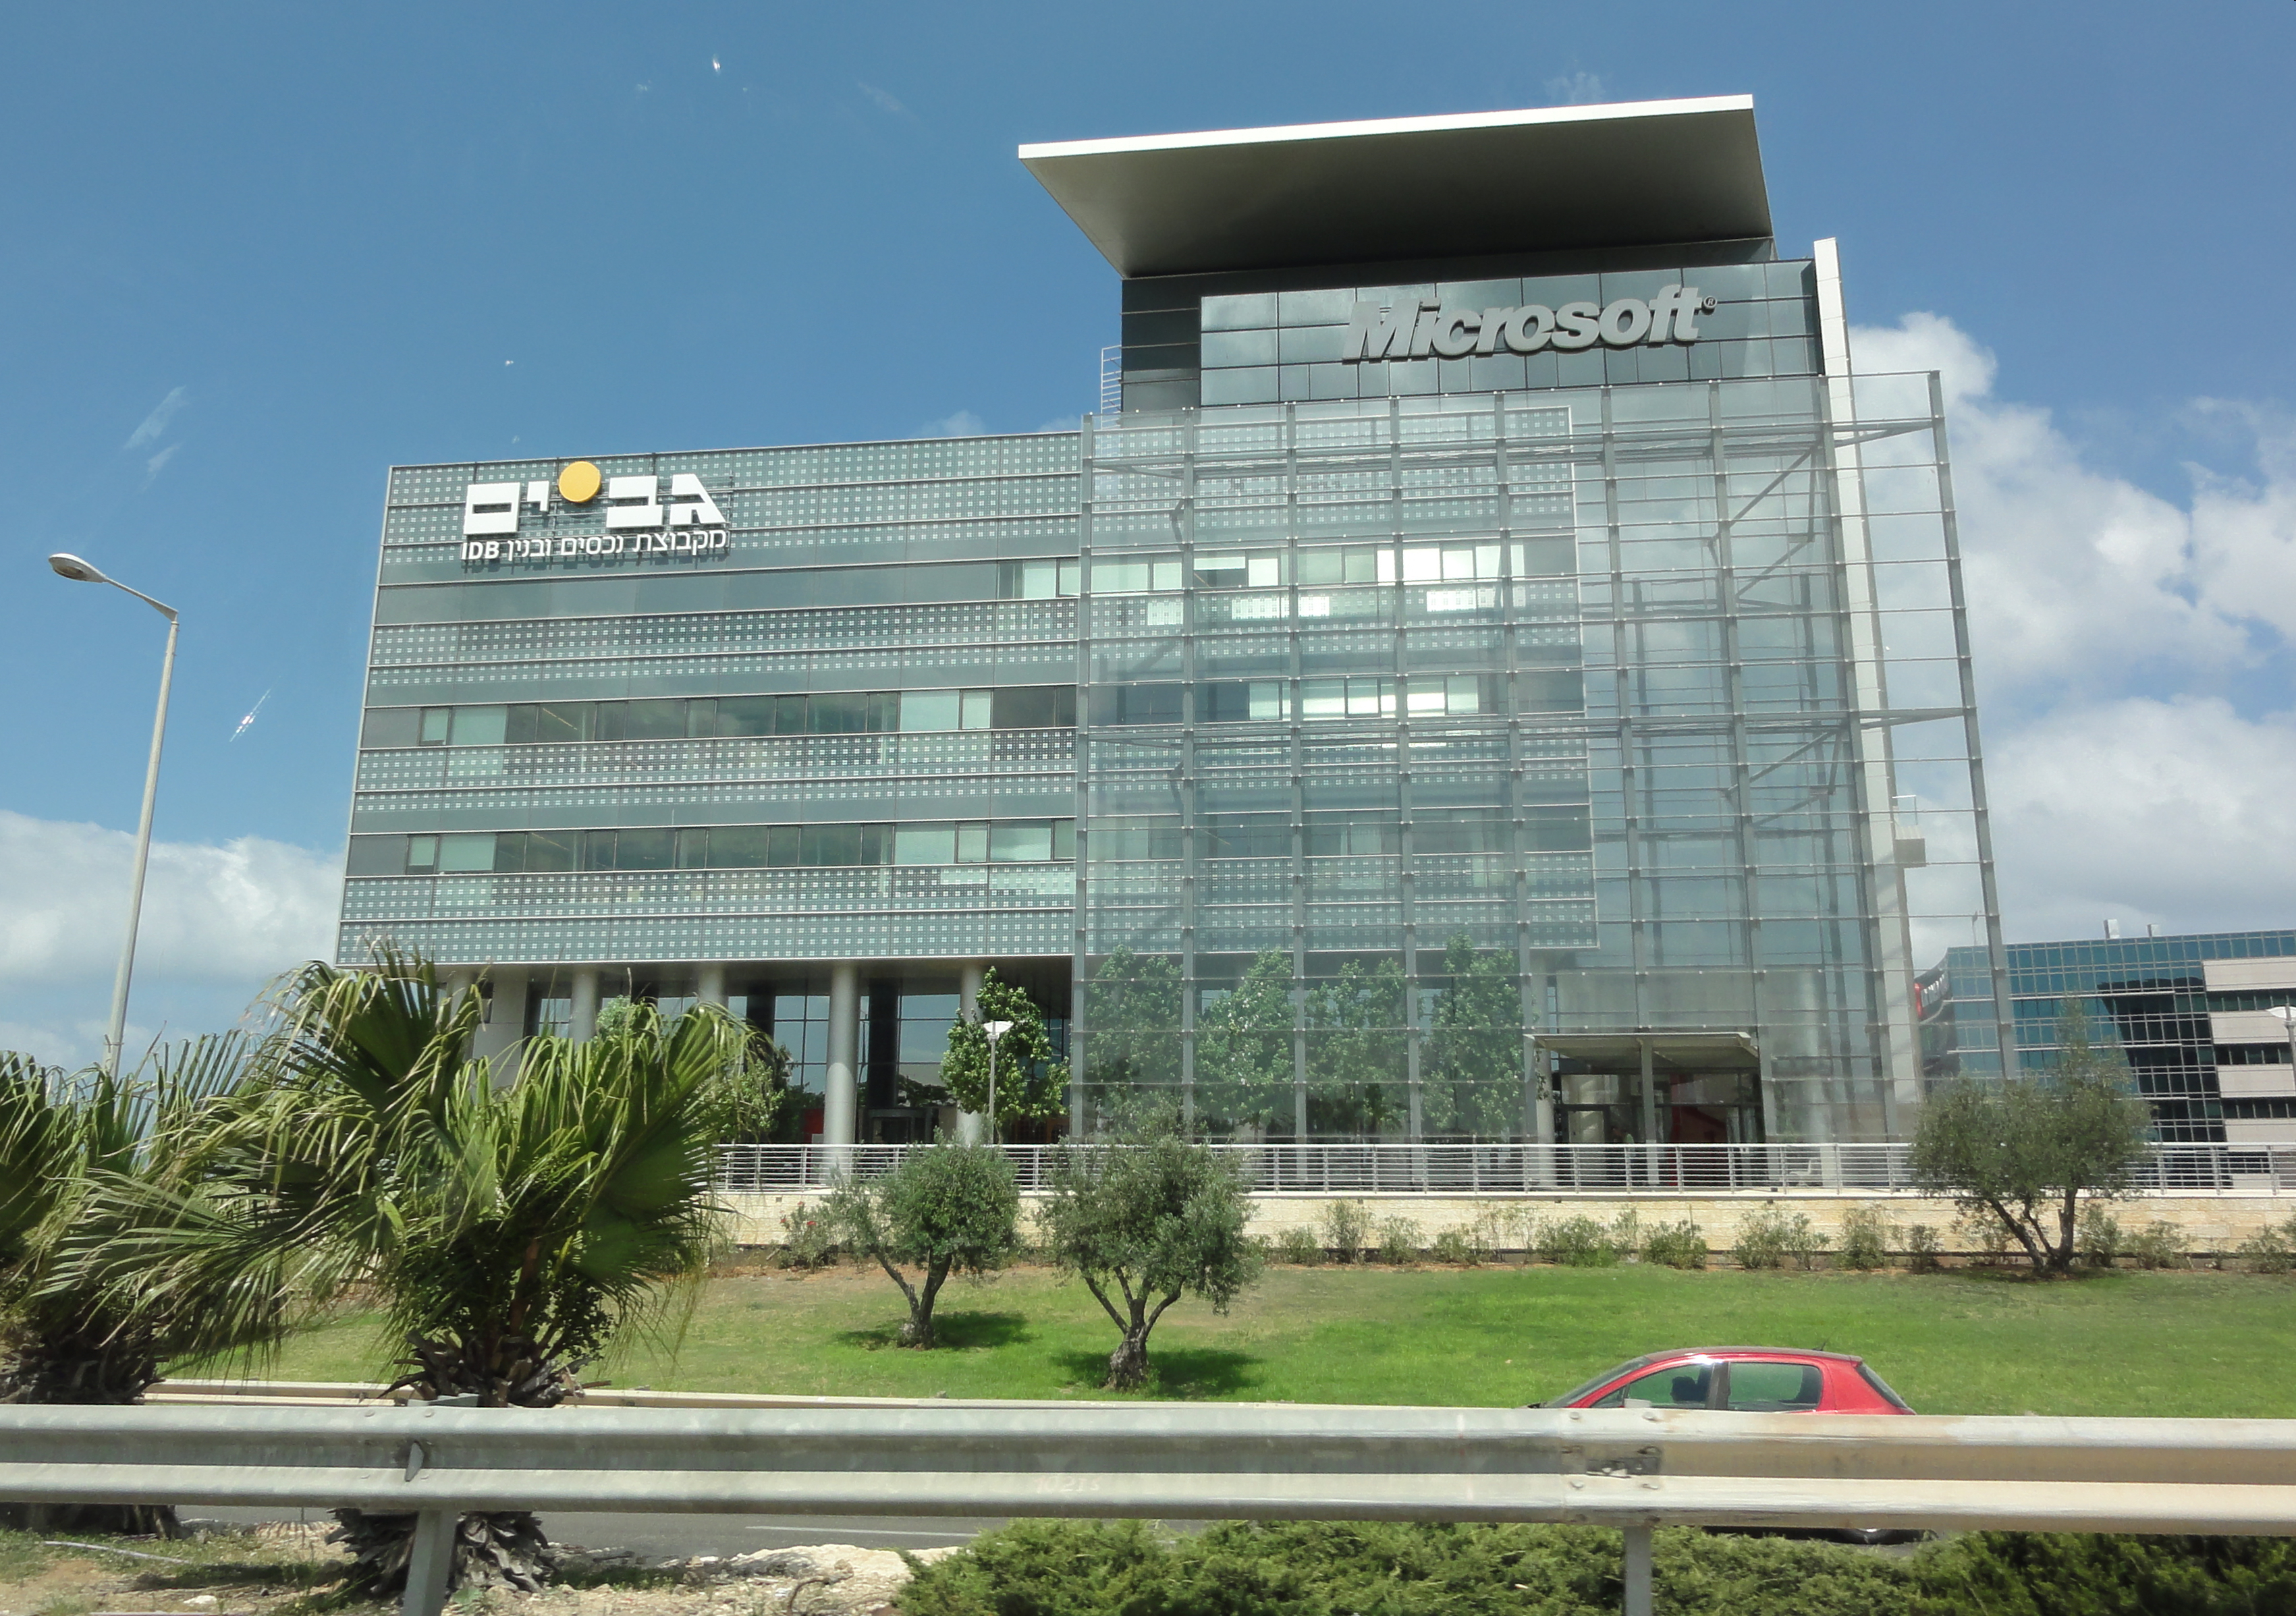 twitter doubles silicon valley office. Microsoft Offices In Haifa. Photo: Mattes / Wikimedia Twitter Doubles Silicon Valley Office